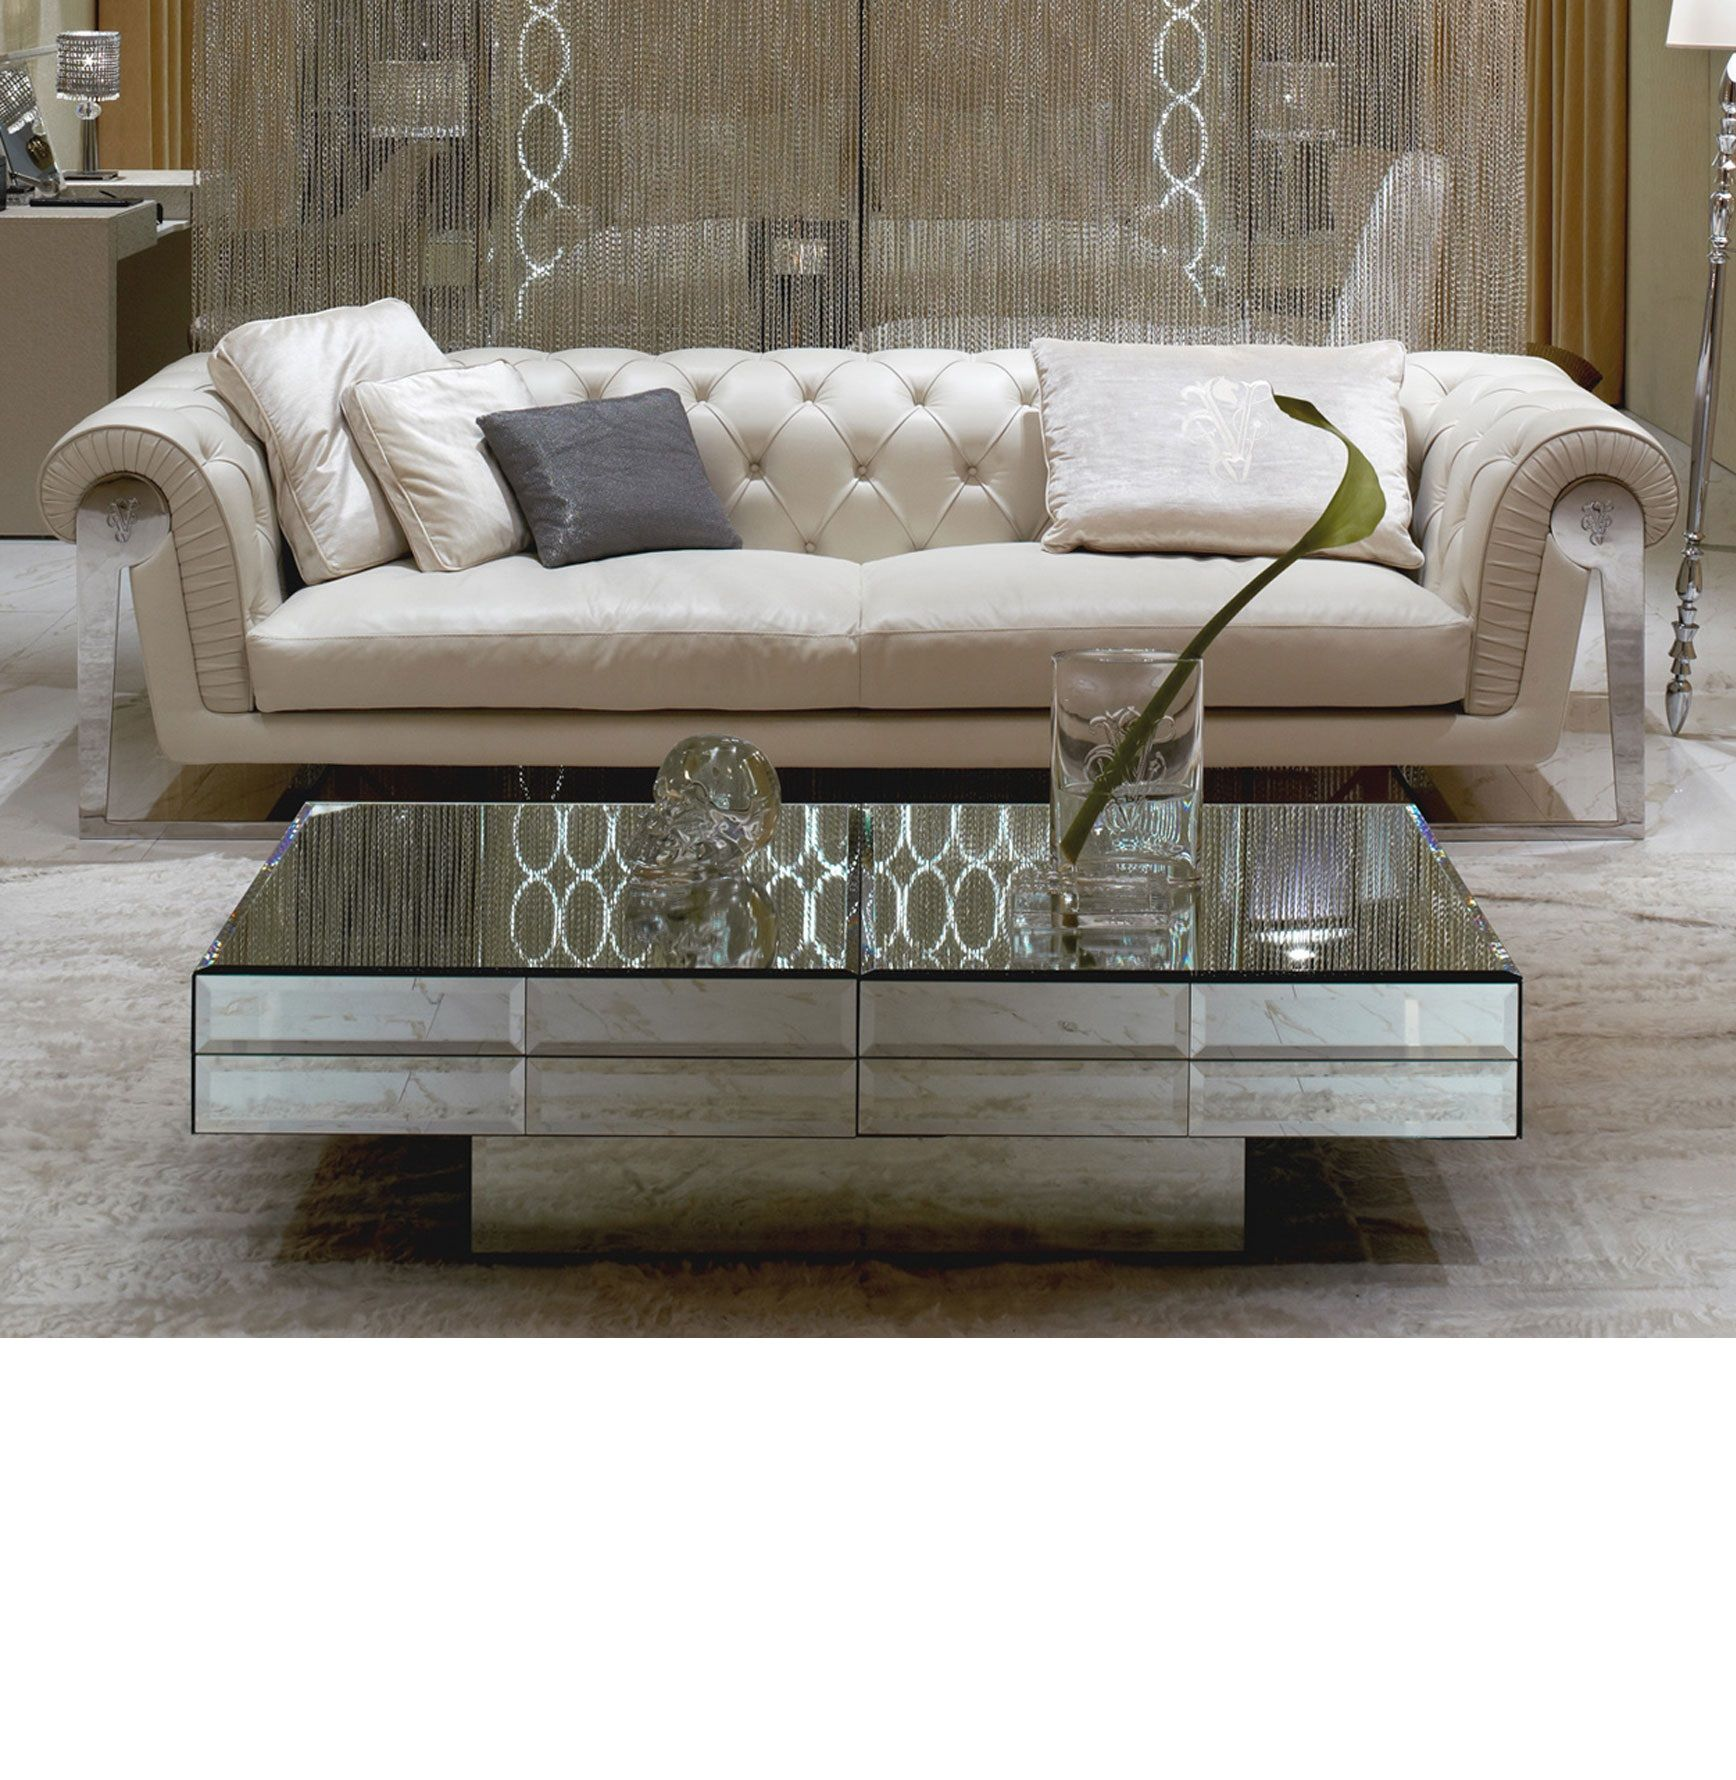 Instyle Decor Com Luxury Coffee Tables Cocktail Tables Luxury Interior Design Mirrored Coffee Tables Decor Luxury Furniture